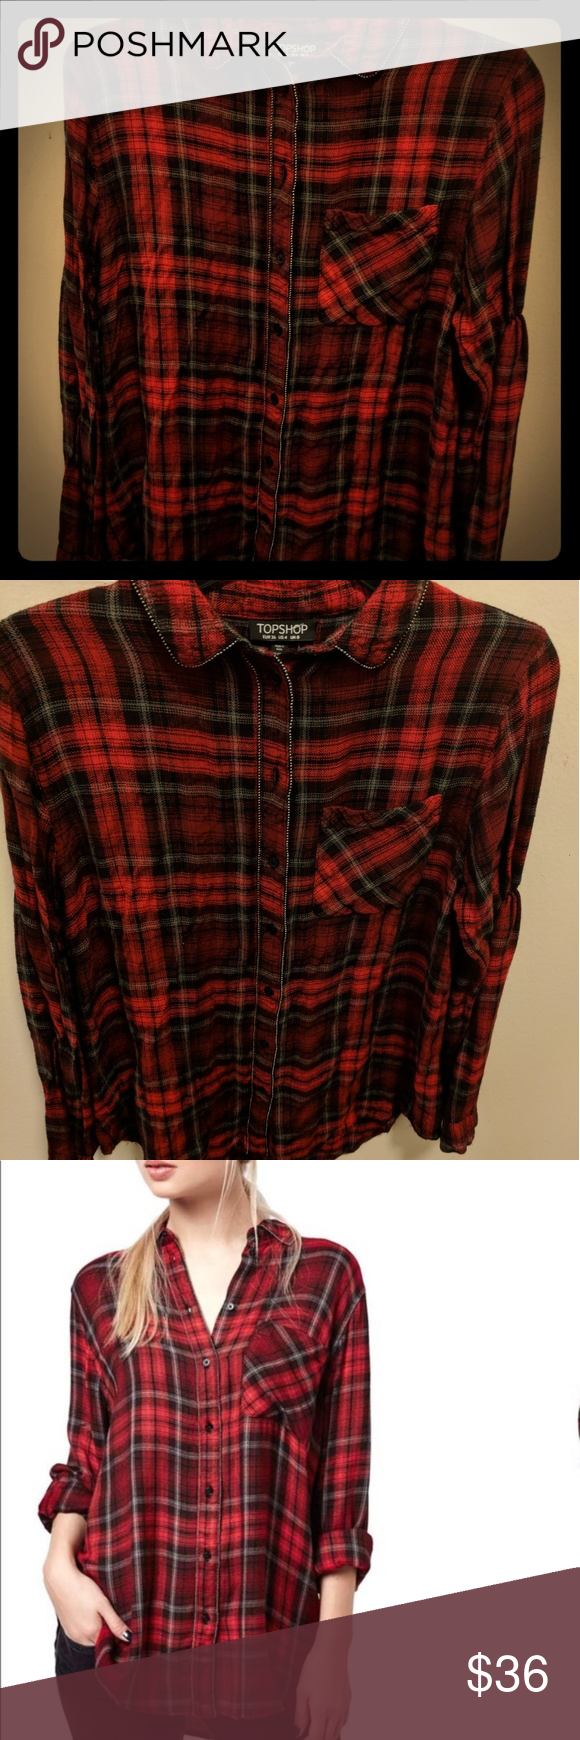 Dark red flannel  Topshop Flannel  Flannels Black plaid and Topshop